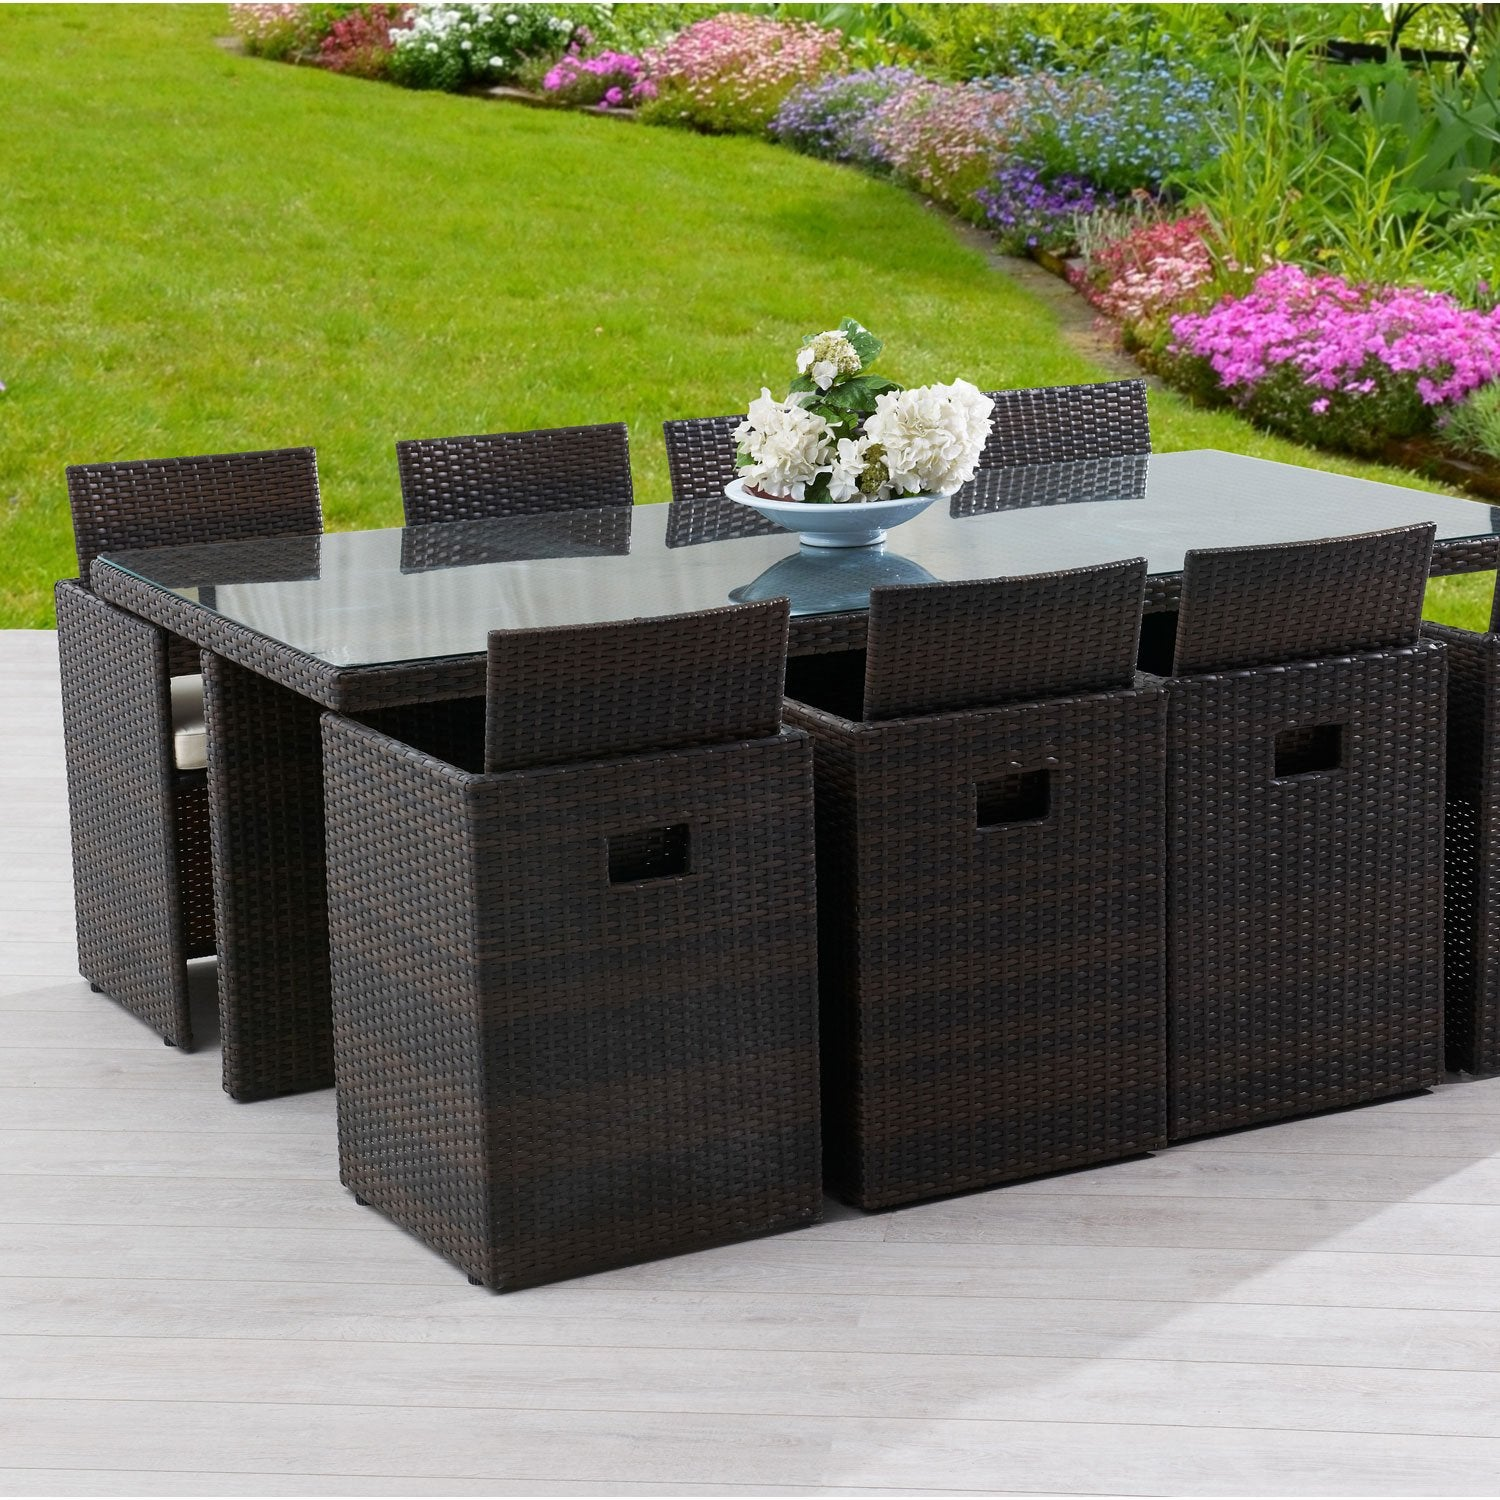 Salon de jardin encastrable r sine tress e marron 1 table - Salon jardin en resine ...